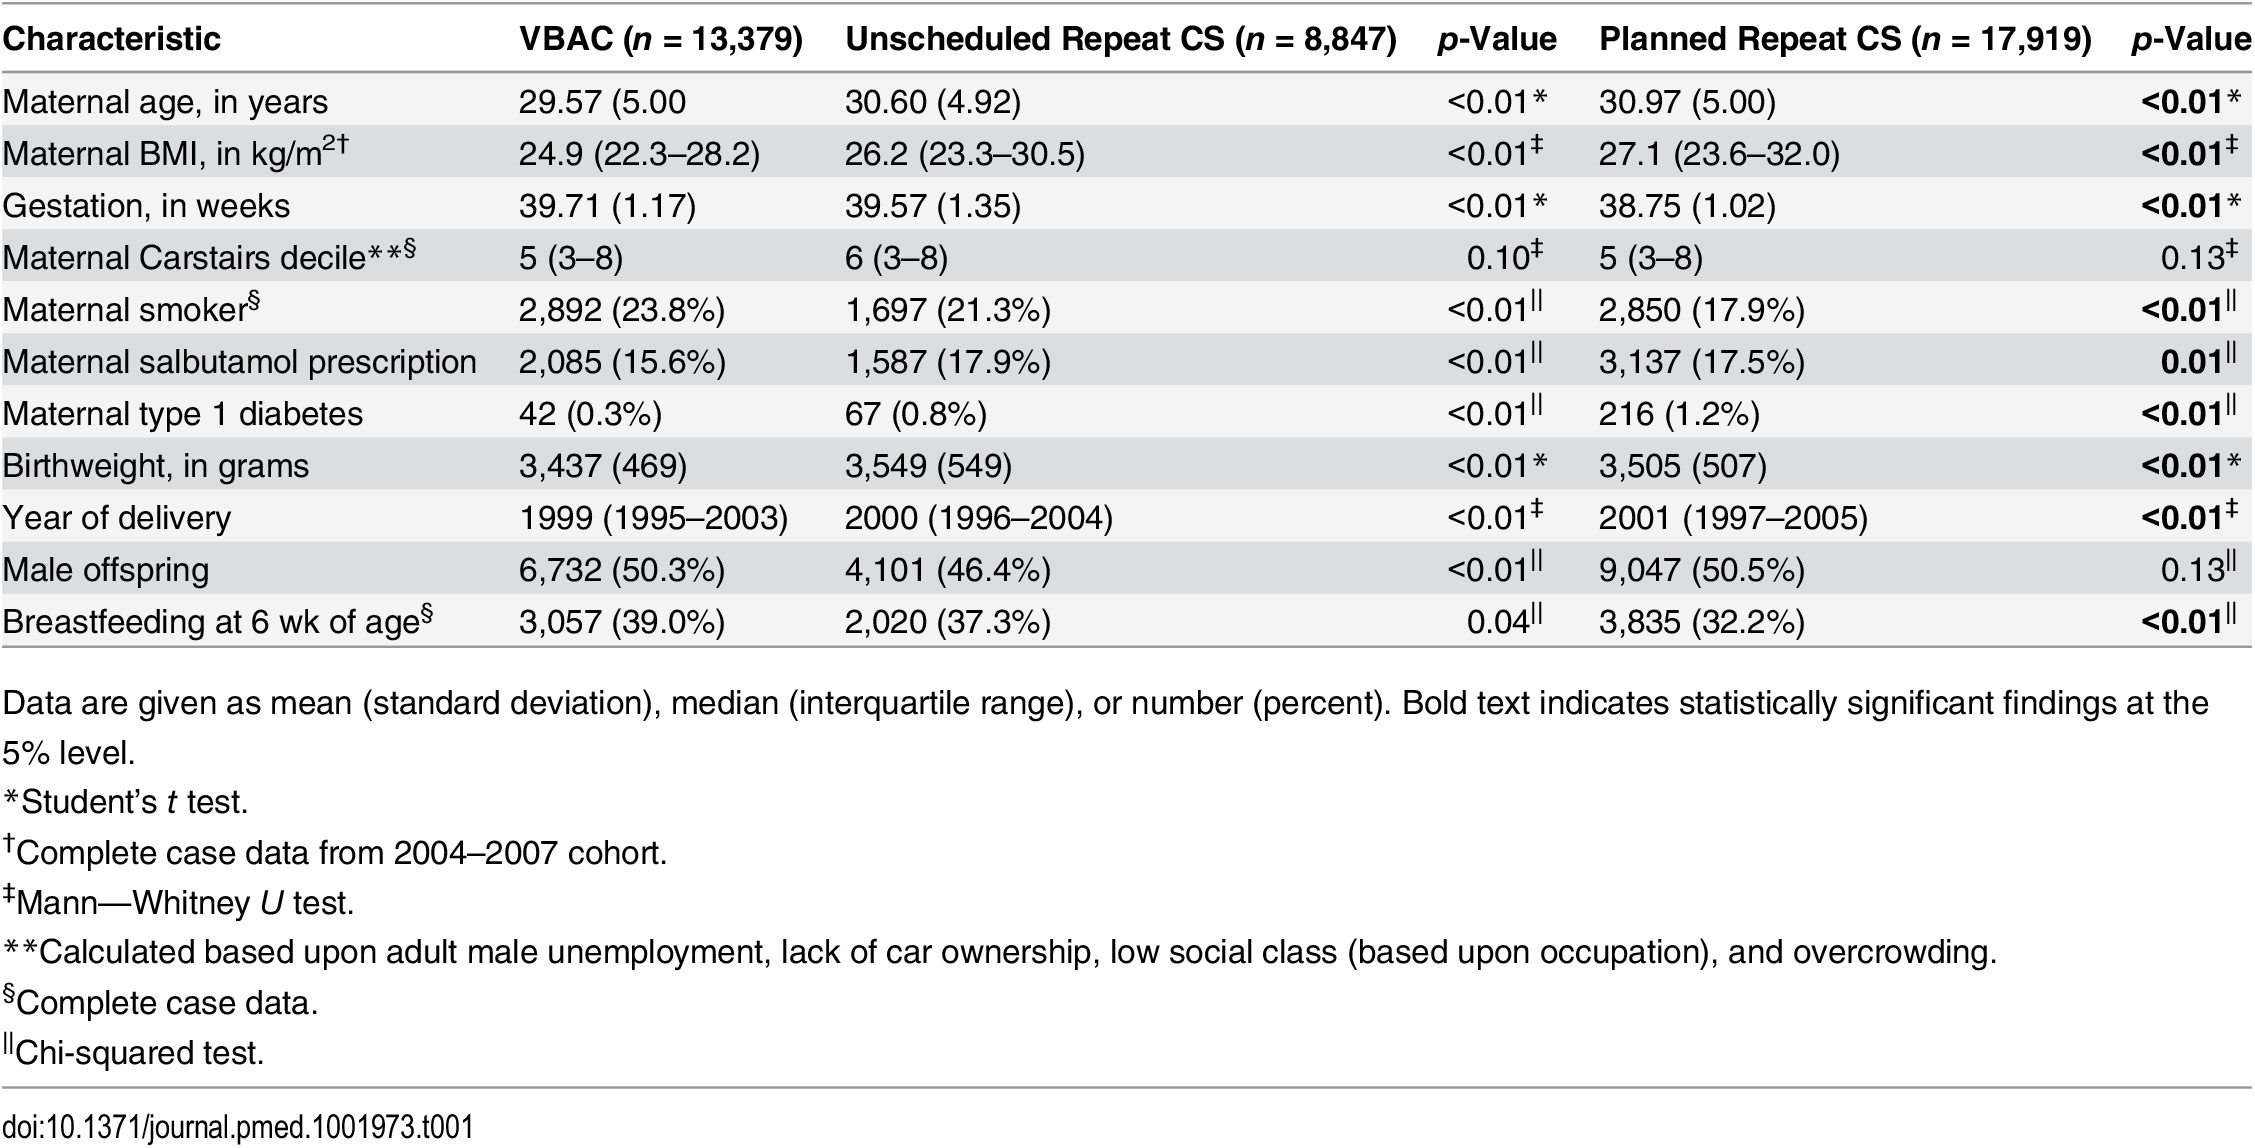 Demographic characteristics of the planned and unscheduled repeat cesarean groups compared to the VBAC group.